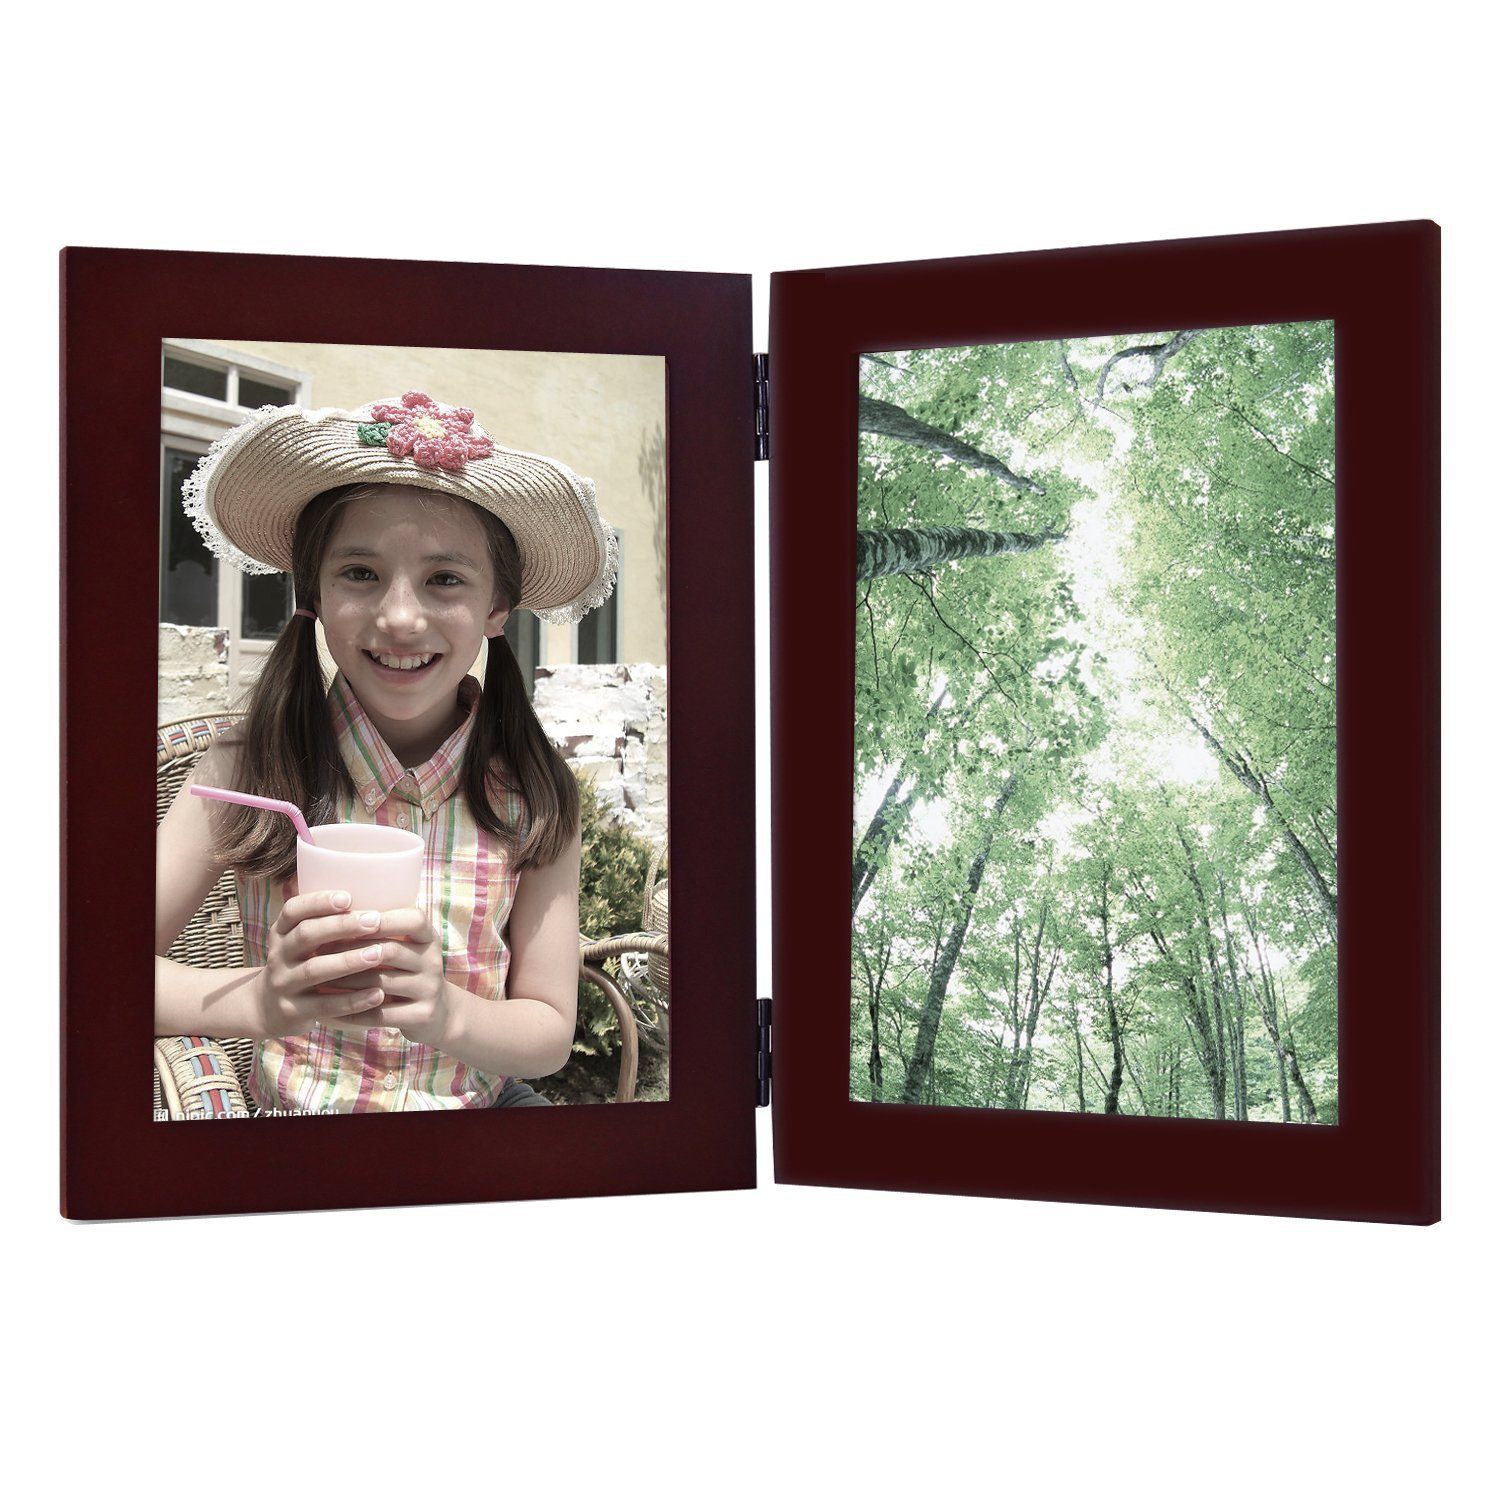 Cheap Frame 3 5x7 Openings Find Frame 3 5x7 Openings Deals On Line